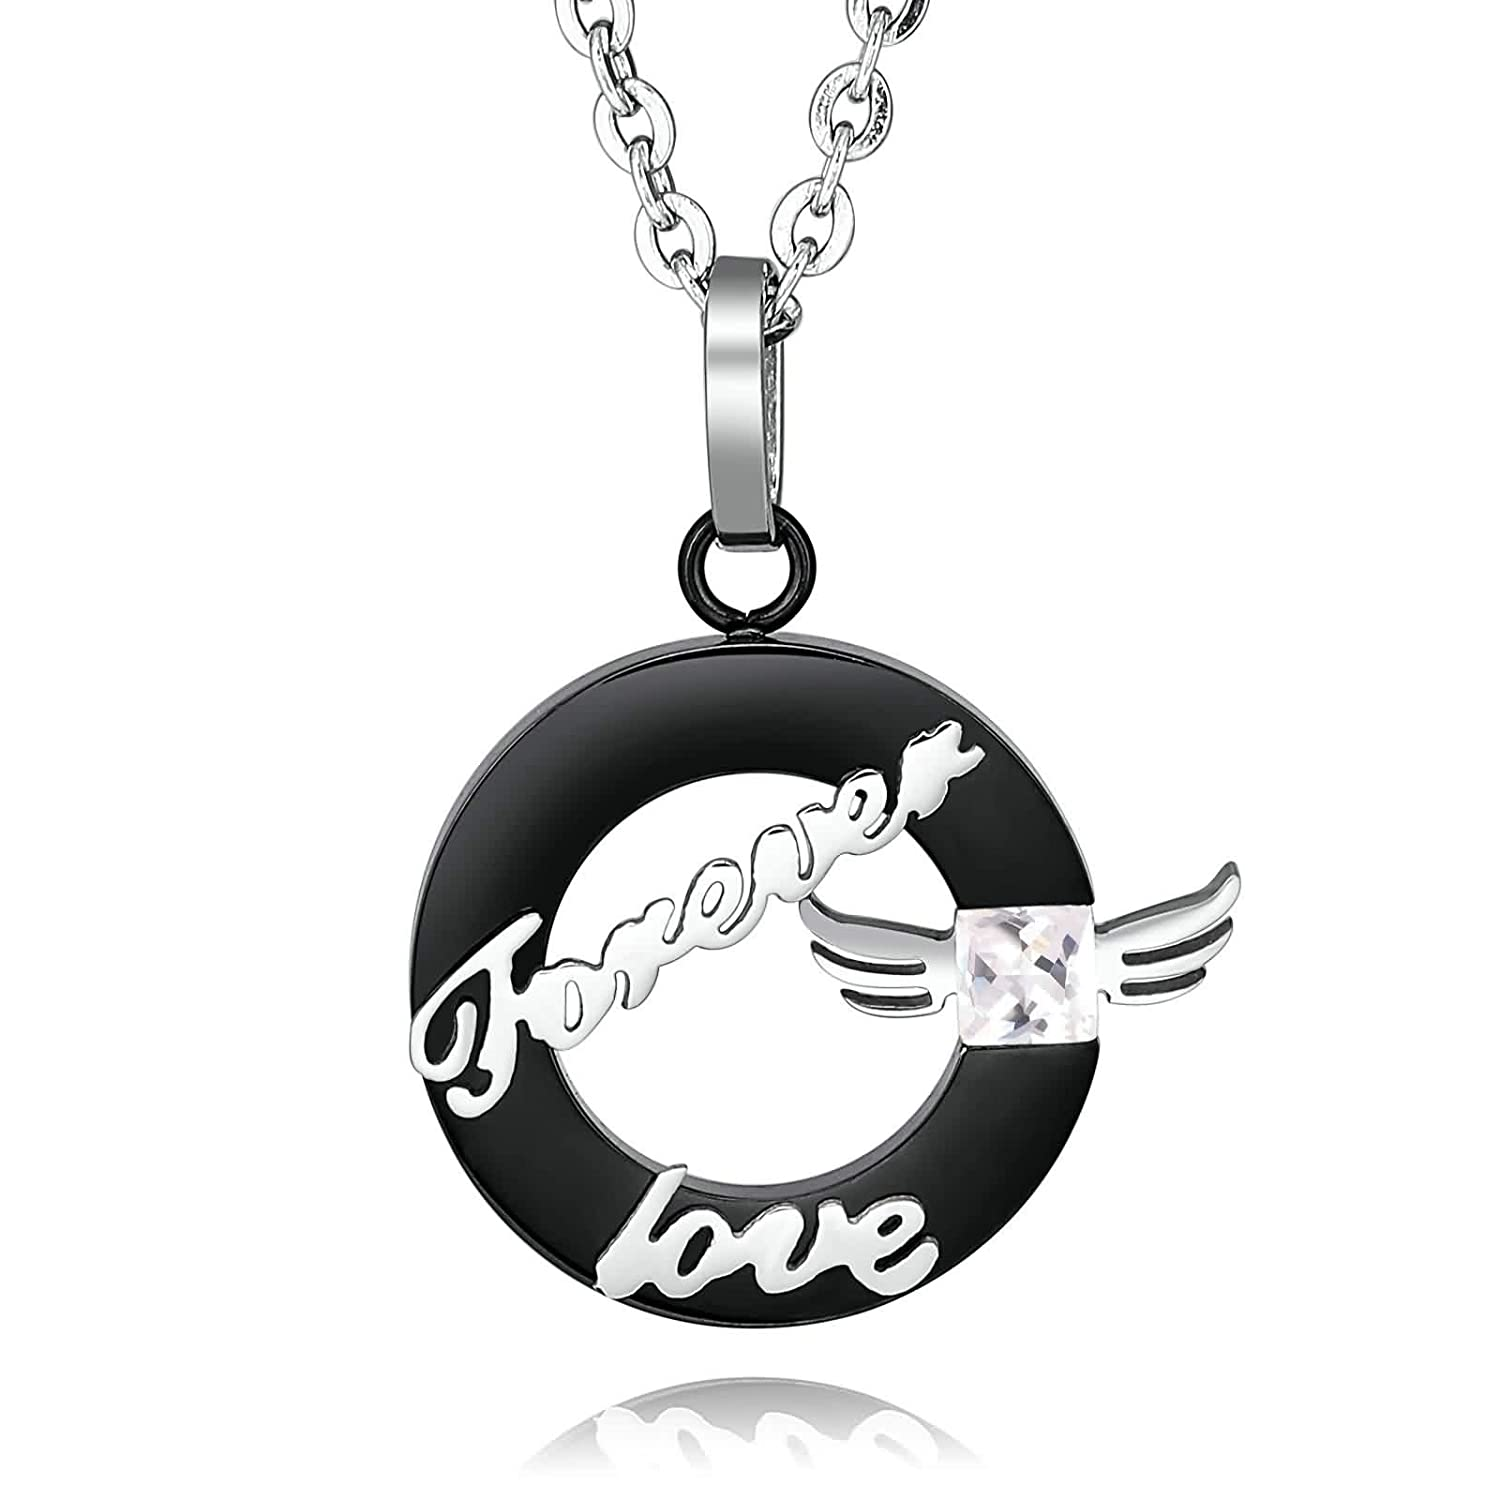 1PCS His & Hers Stainless Steel Pendant Necklace Engraved \